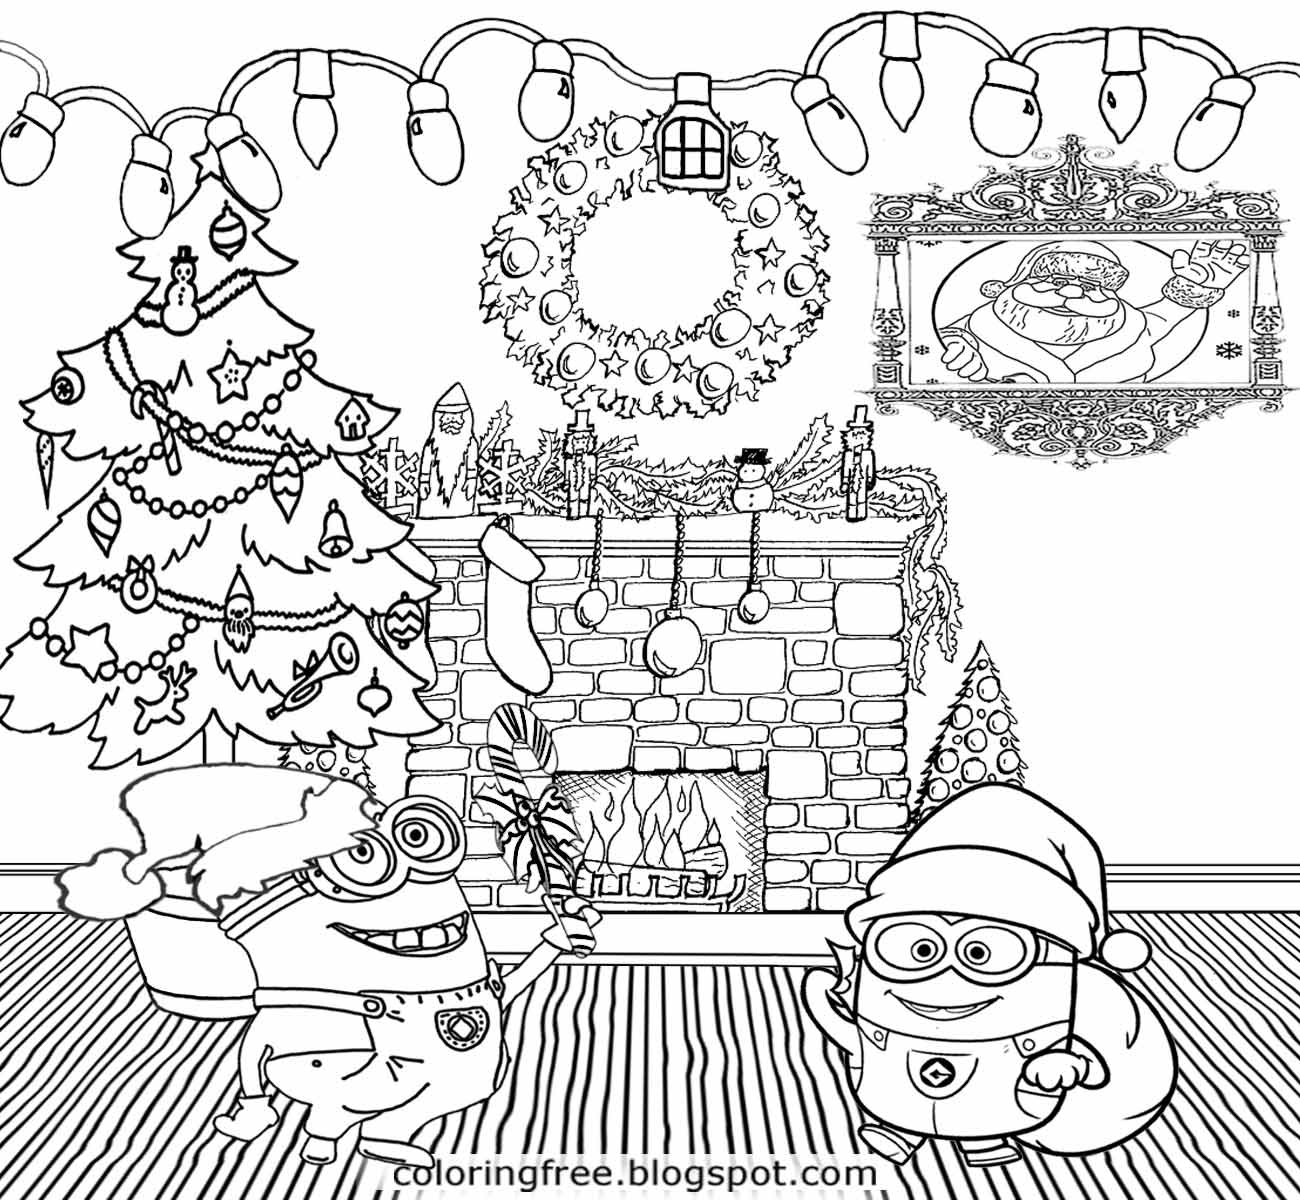 Xmas Tree Party Things To Draw Cool Merry Christmas Minions Coloring Pages For Teenagers Print